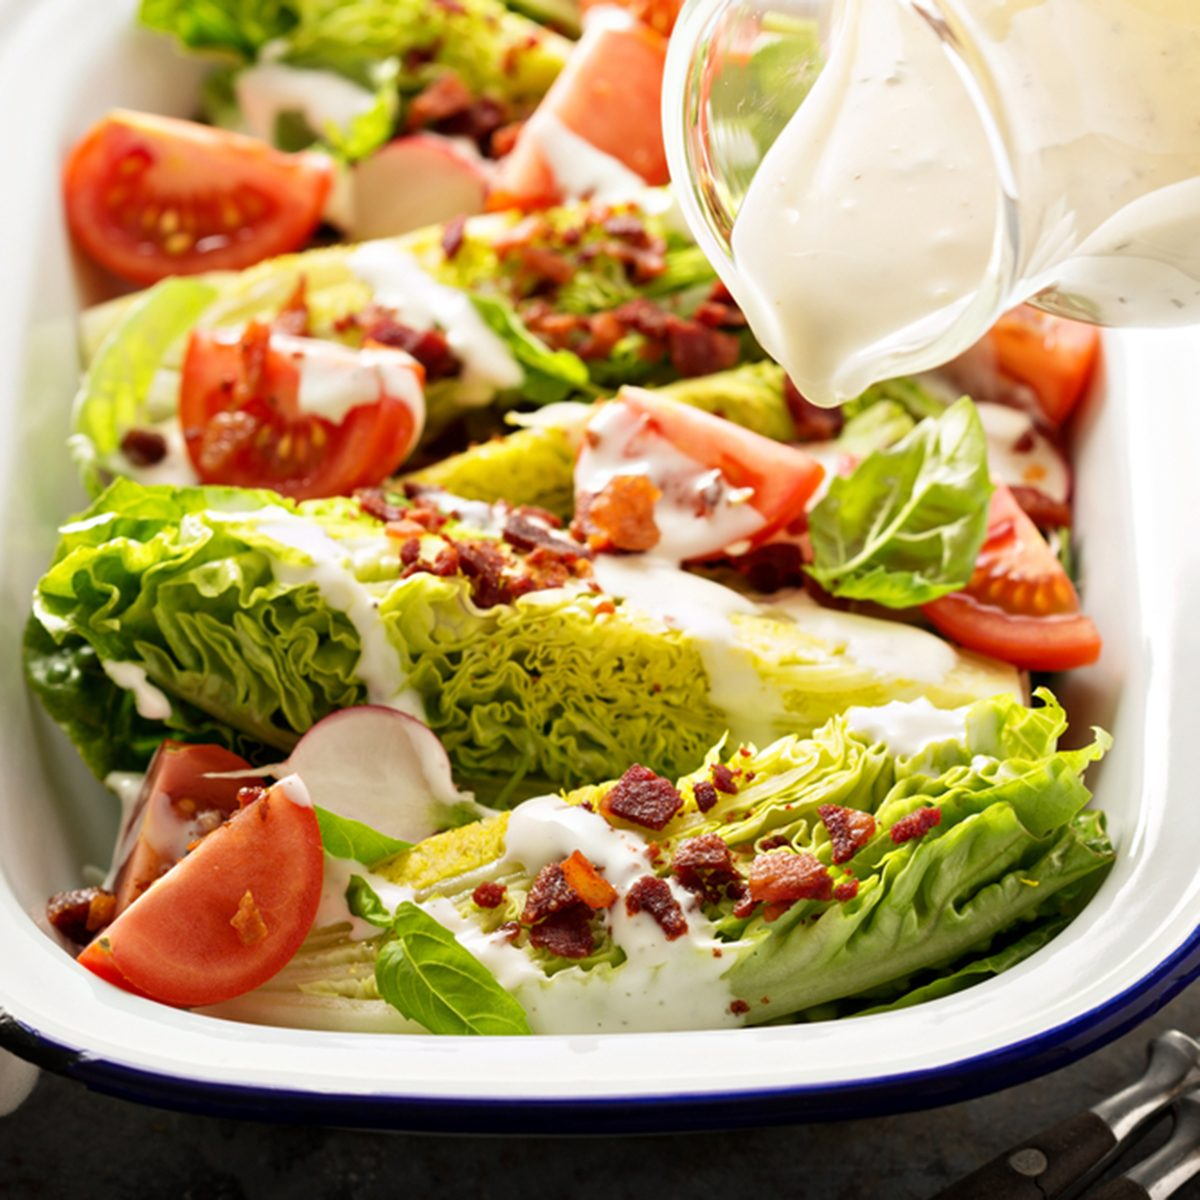 Wedge salad with baby lettuce, cherry tomatoes, bacon and ranch dressing pouring over.;